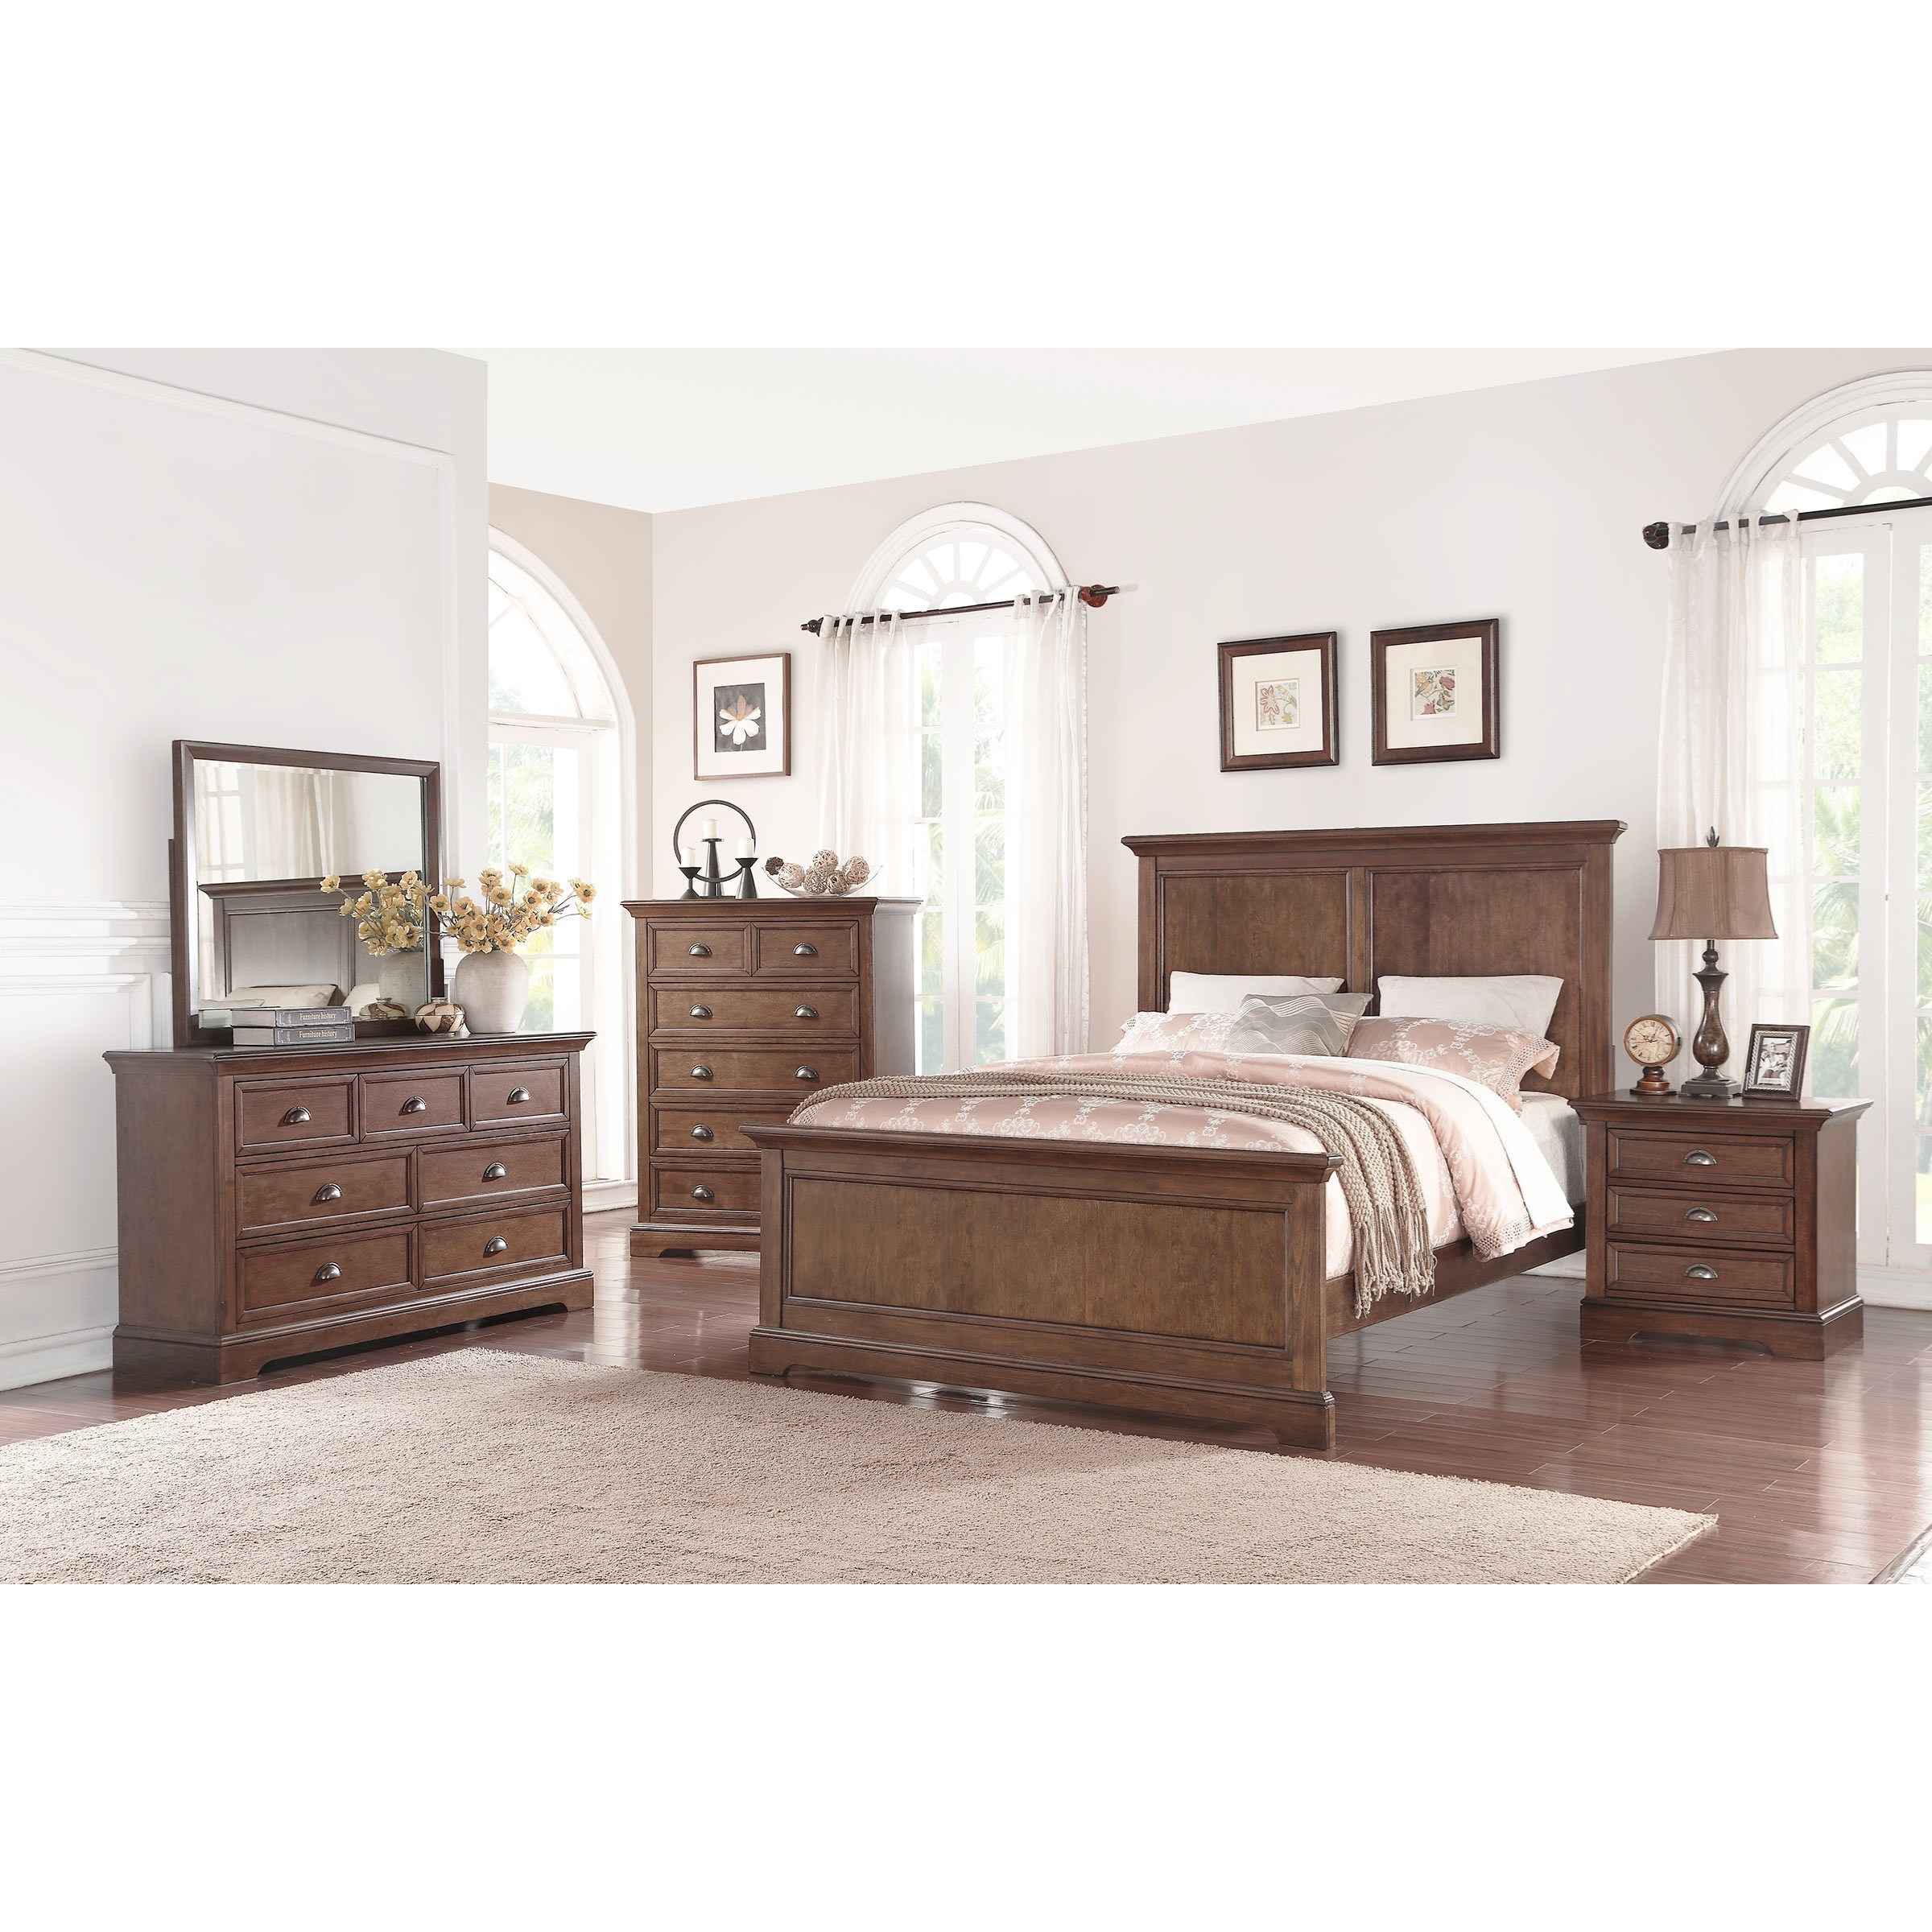 Winners Only Tamarack King Bedroom Group Dunk Bright Furniture Bedroom Groups